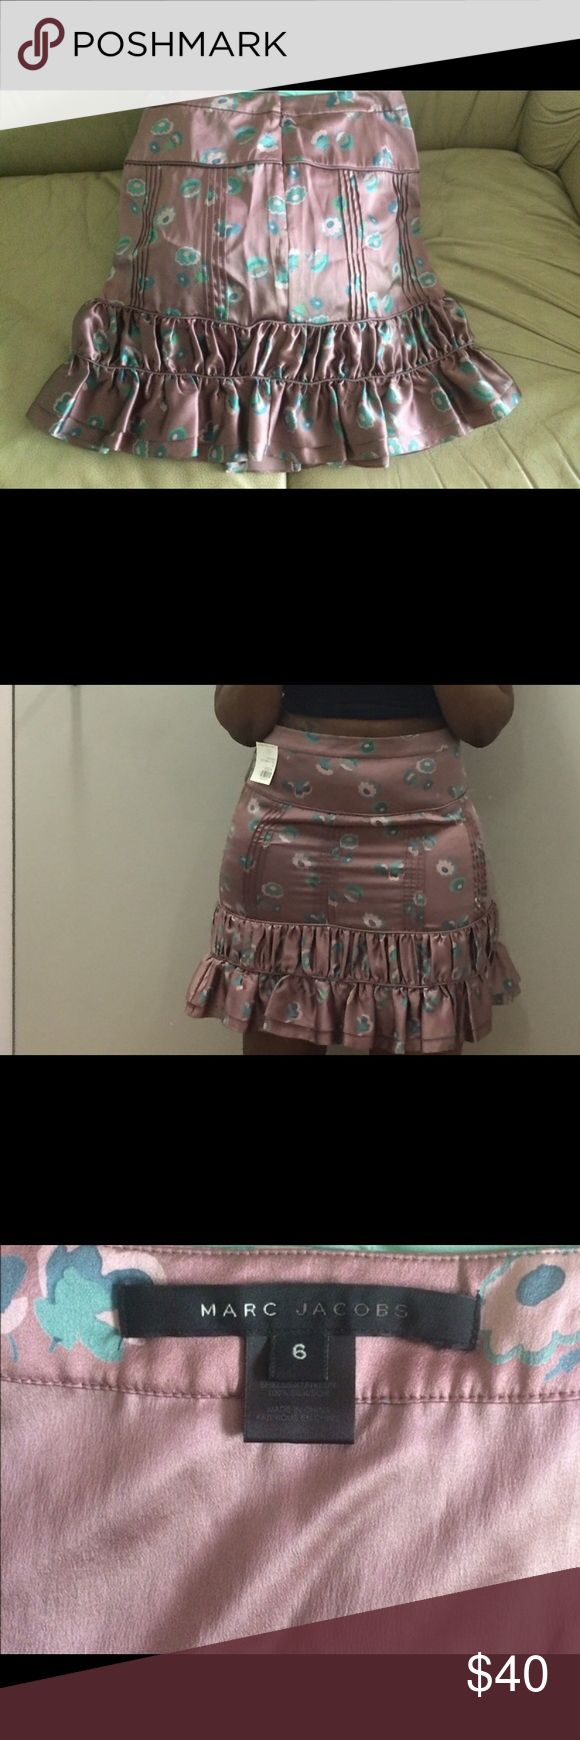 🎈🎈Marc Jacobs Frill Skirt🎈🎈 Marc Jacobs frill skirt for sale .. super cute flirty piece with detailed frills .... let's find her a new home Marc Jacobs Skirts Midi